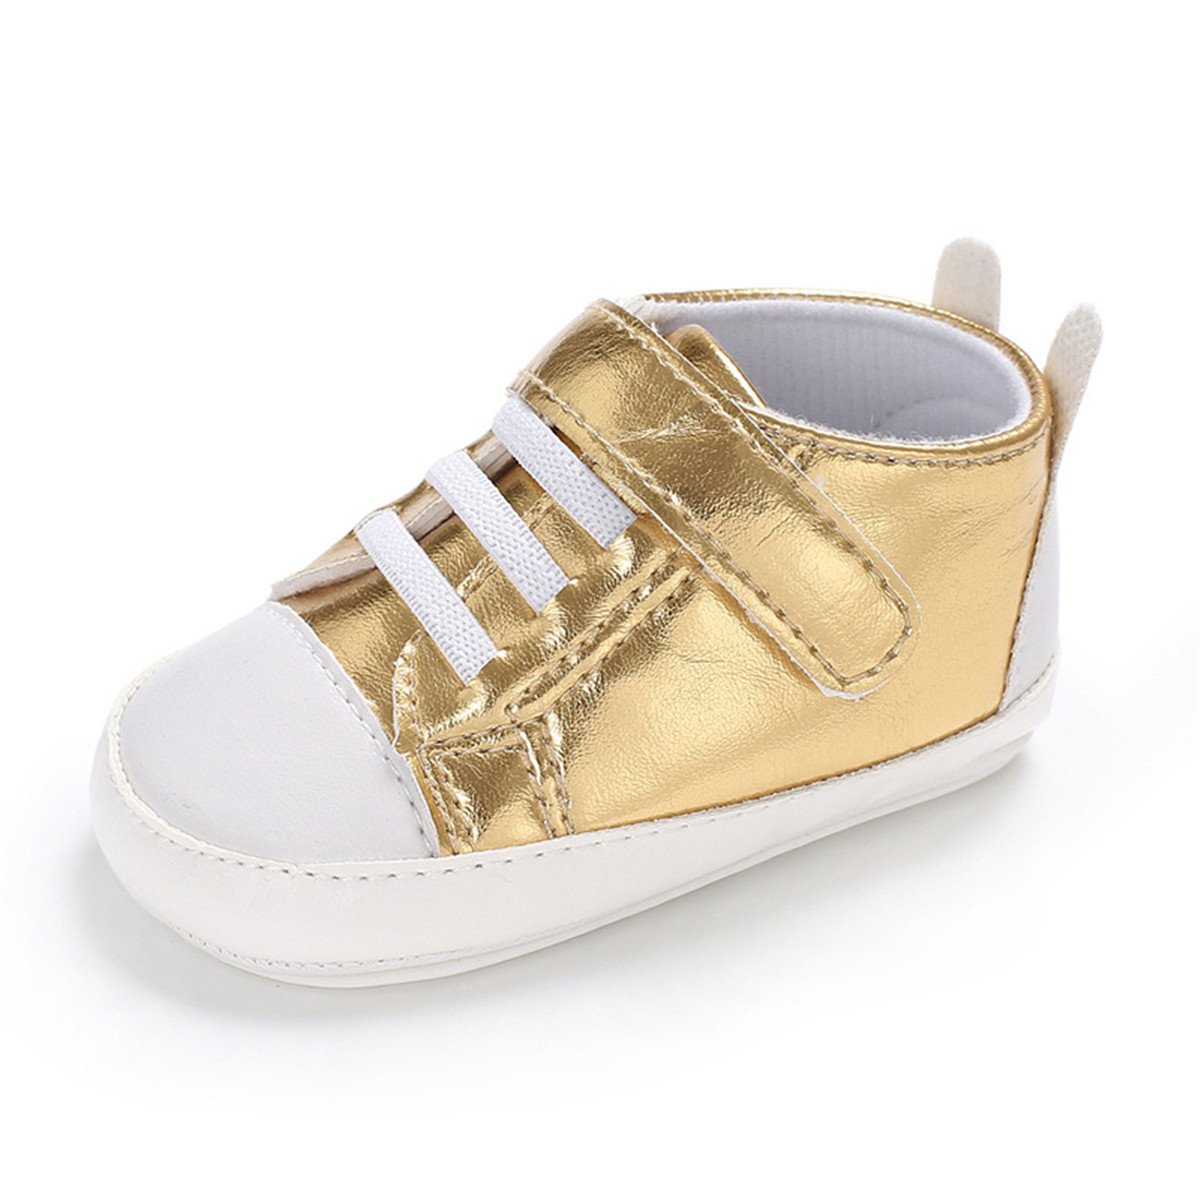 Toddler Girls Boys Baby Canvas Shoes Soft Sole First Walker Infant Newborn Crib Shoes (13cm(12-18 Months), 2.Gold)